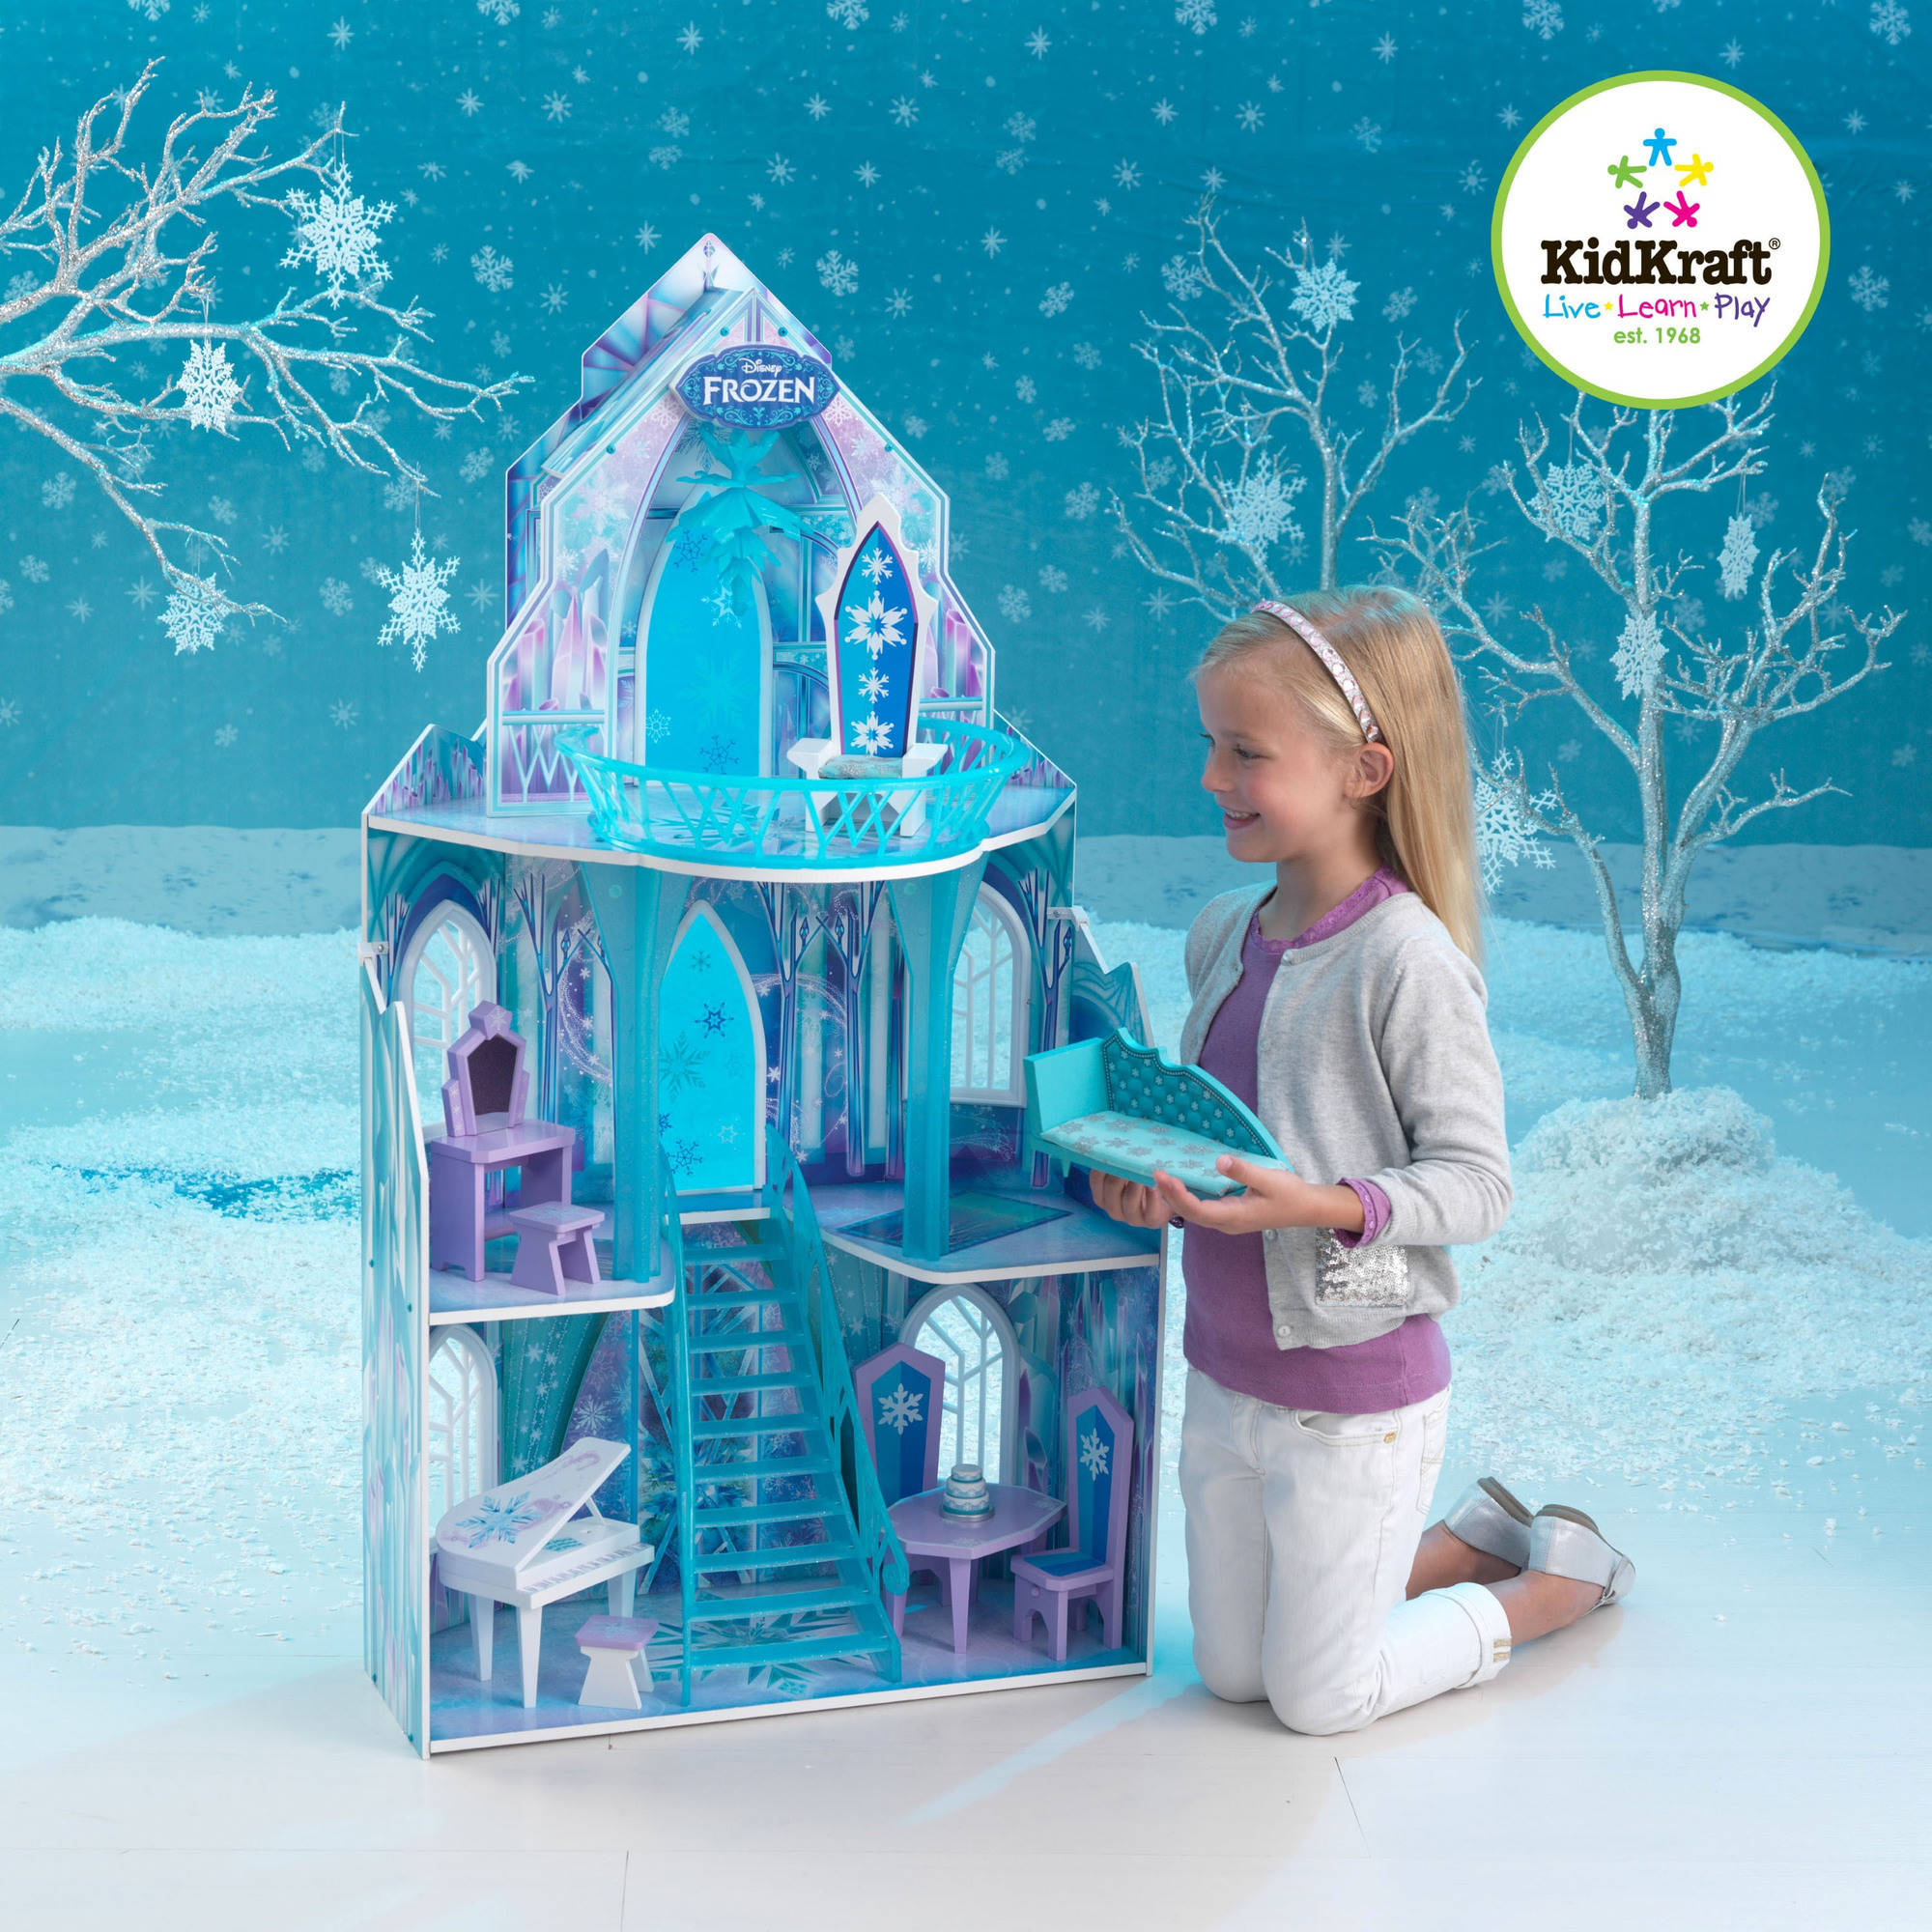 Disney Sofia the First Enchancian Castle - Walmart.com